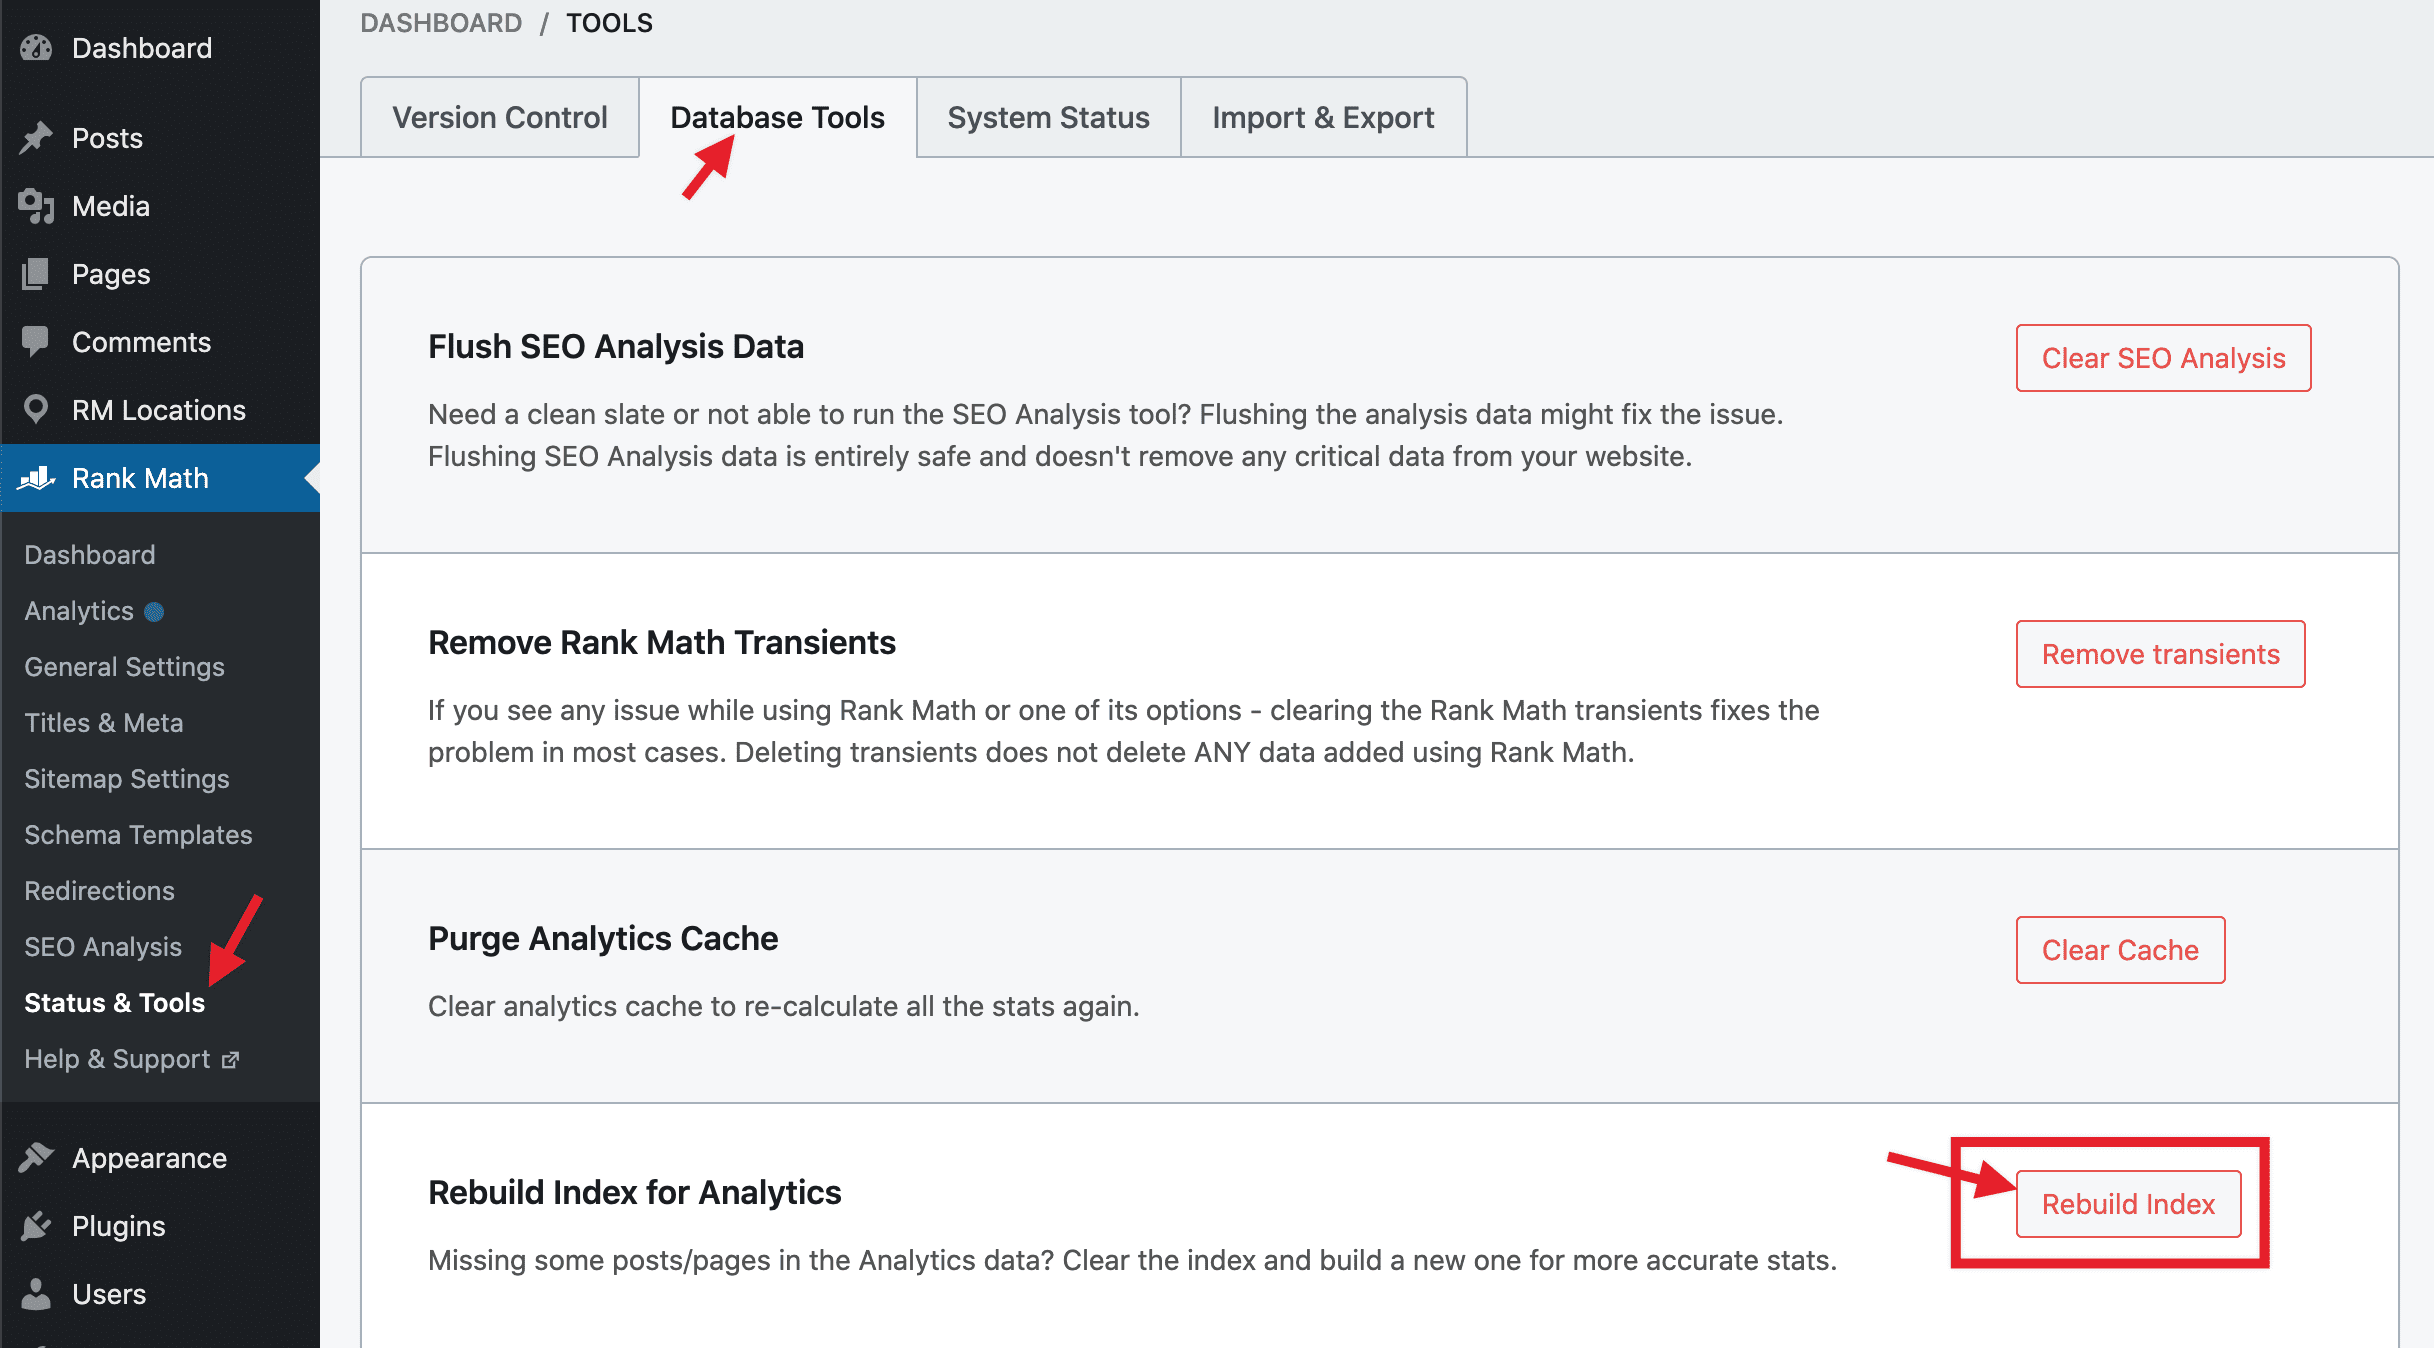 Rebuild Index for Analytics